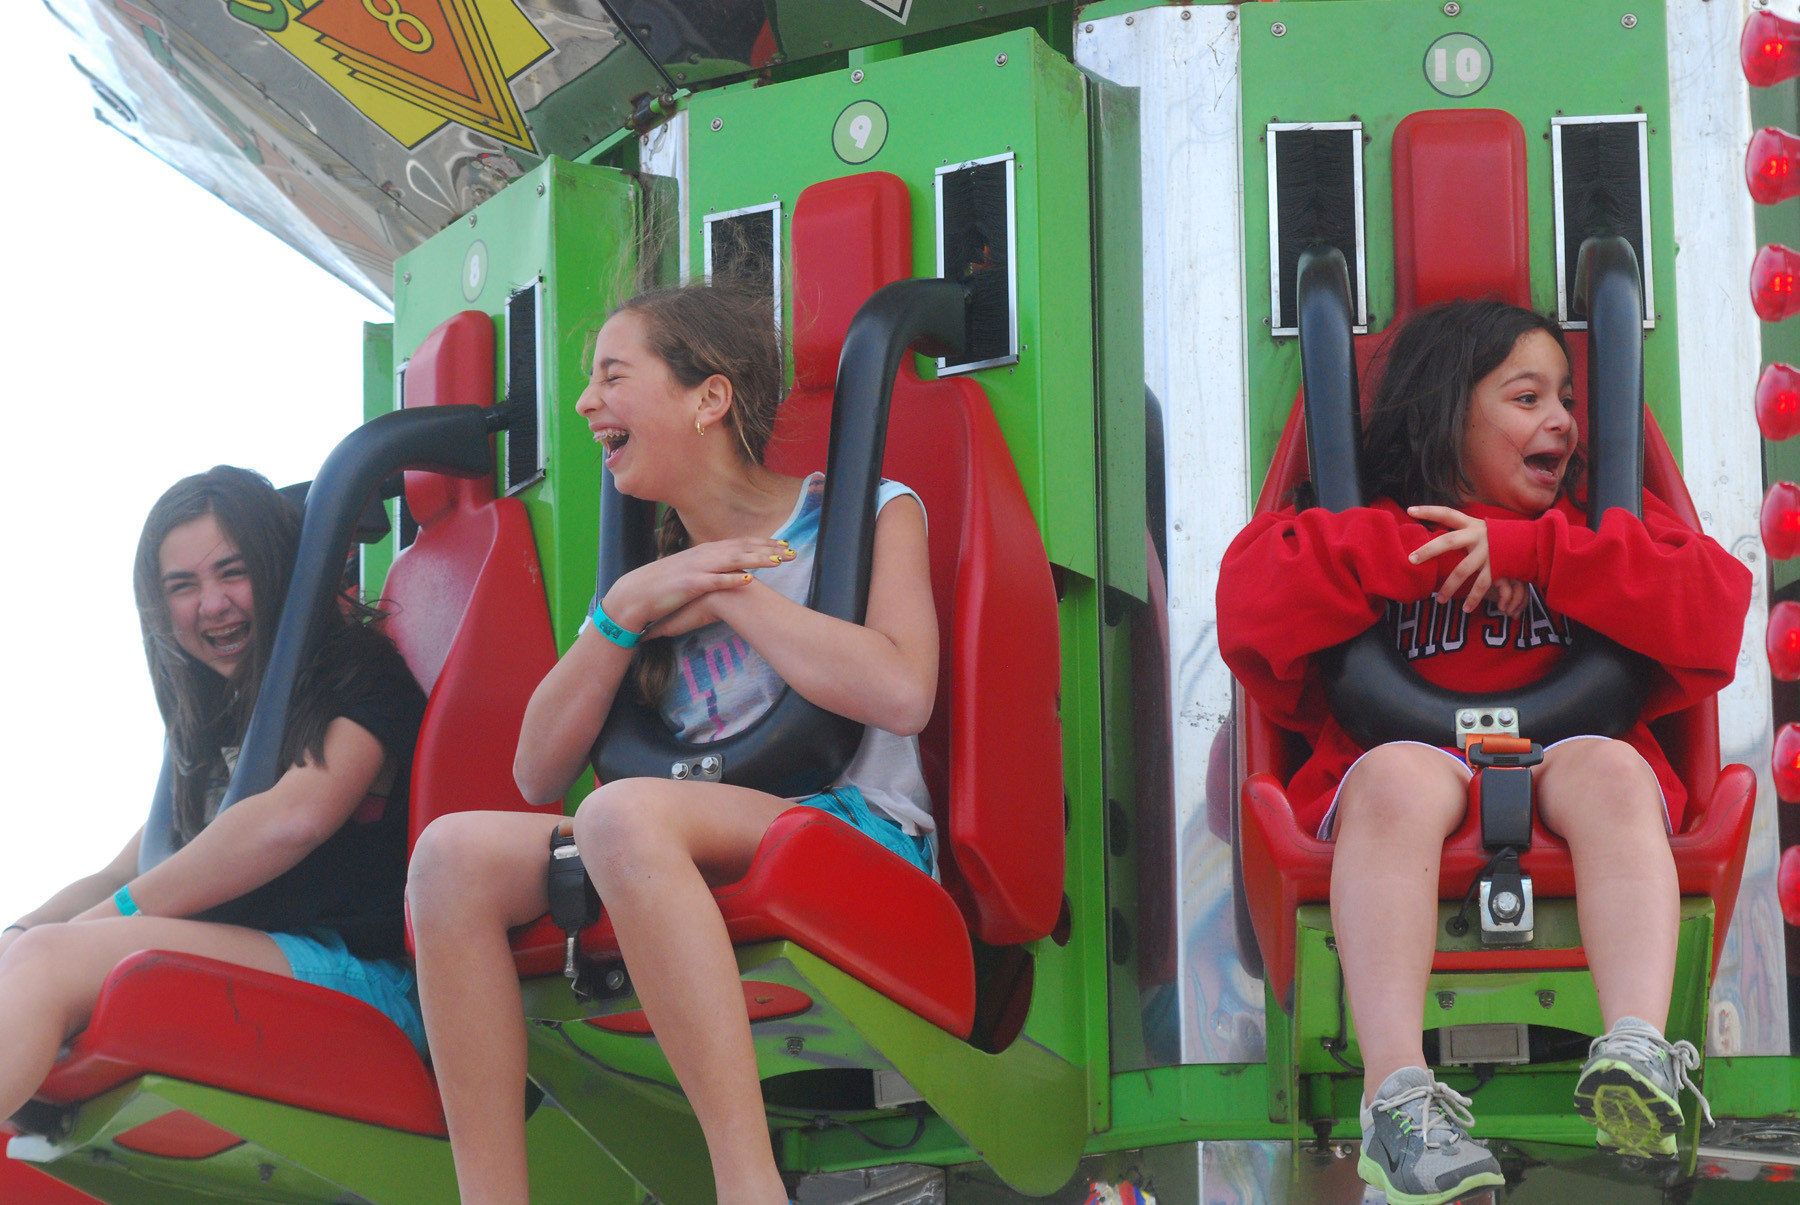 Children were all smiles on the carnival rides at the Merrick Chamber of Commerce's annual Kids Fest last weekend.